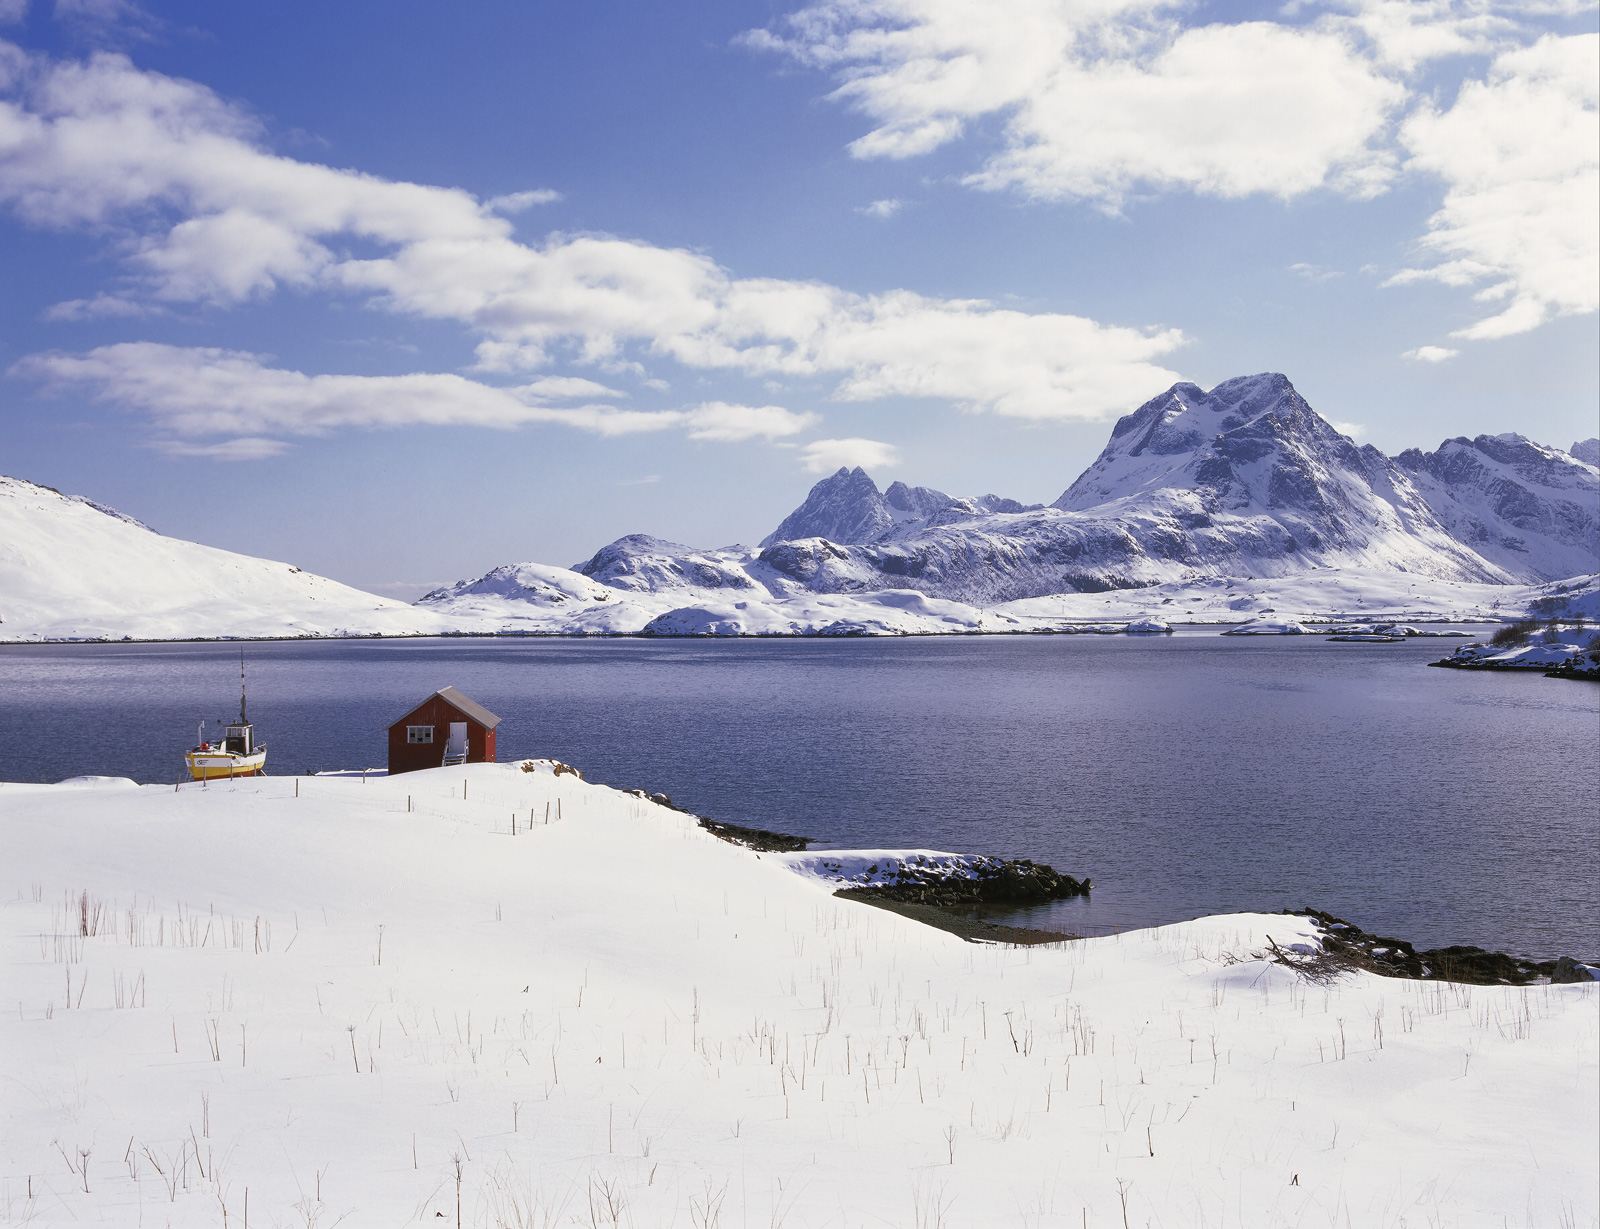 Bedazzled Selfjord, Selfjord, Lofoten, Norway, toothpaste, fresh, white, dazzling, snow, mooring, boat, boat shed, red, photo